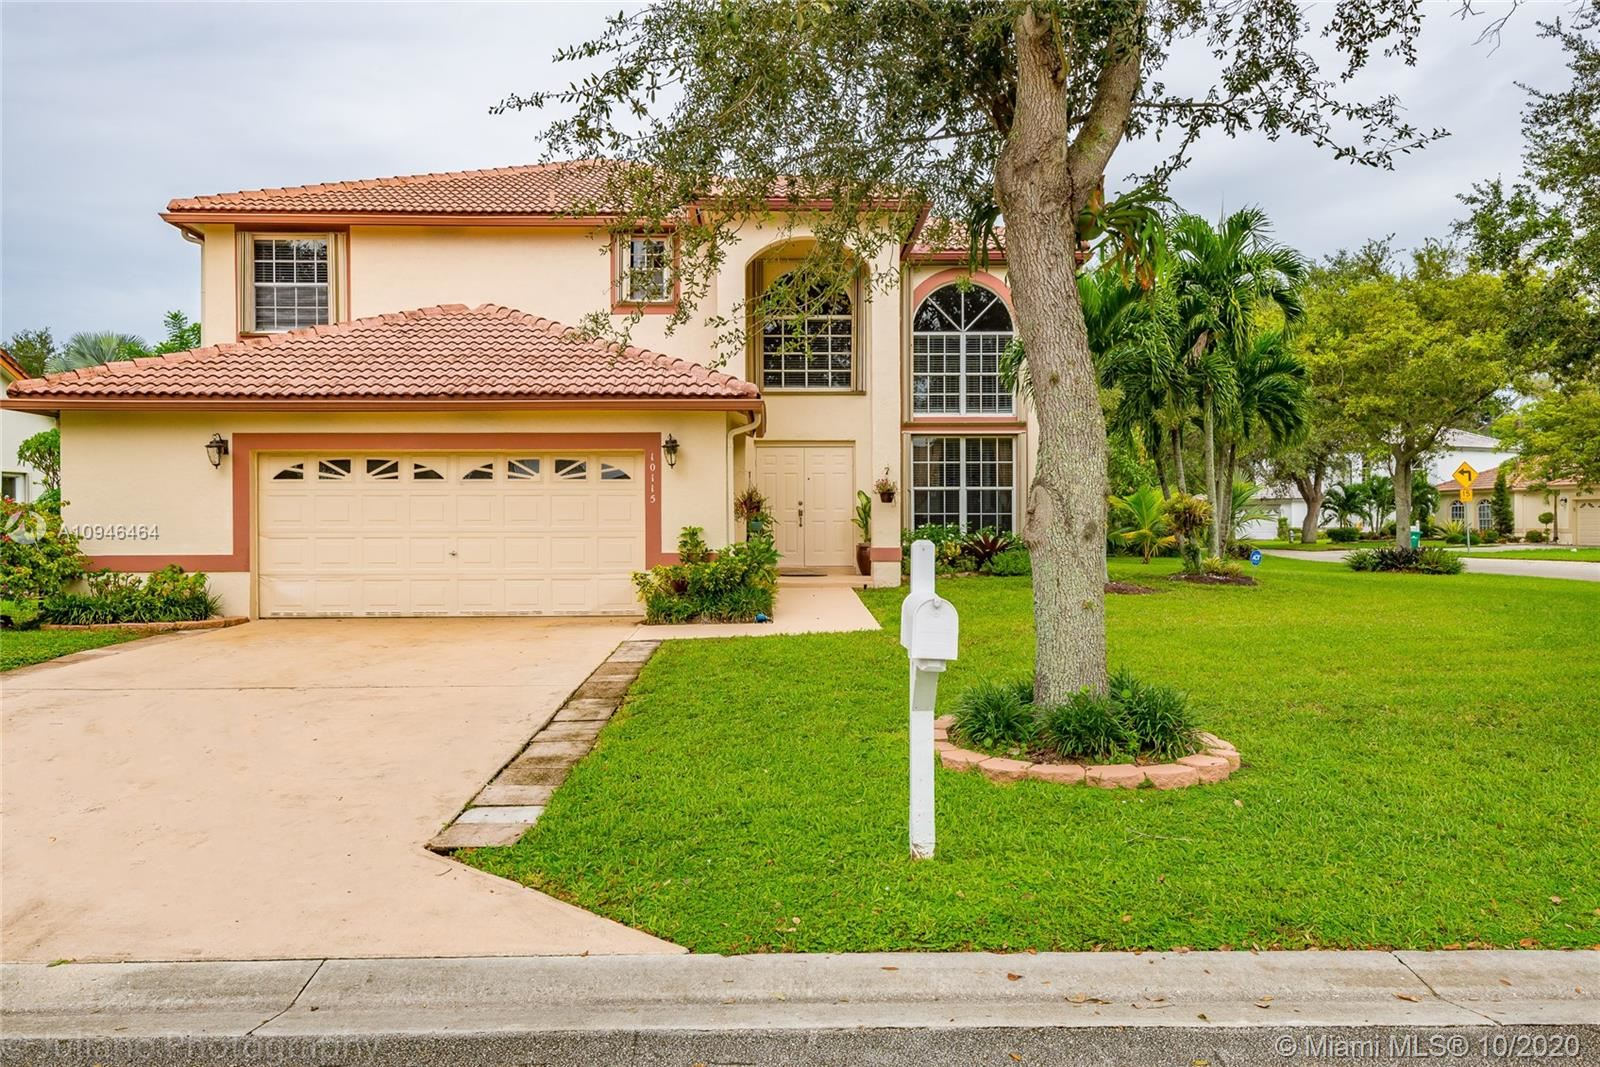 10115 NW 23rd Ct, Coral Springs, FL 33065 - #: A10946464